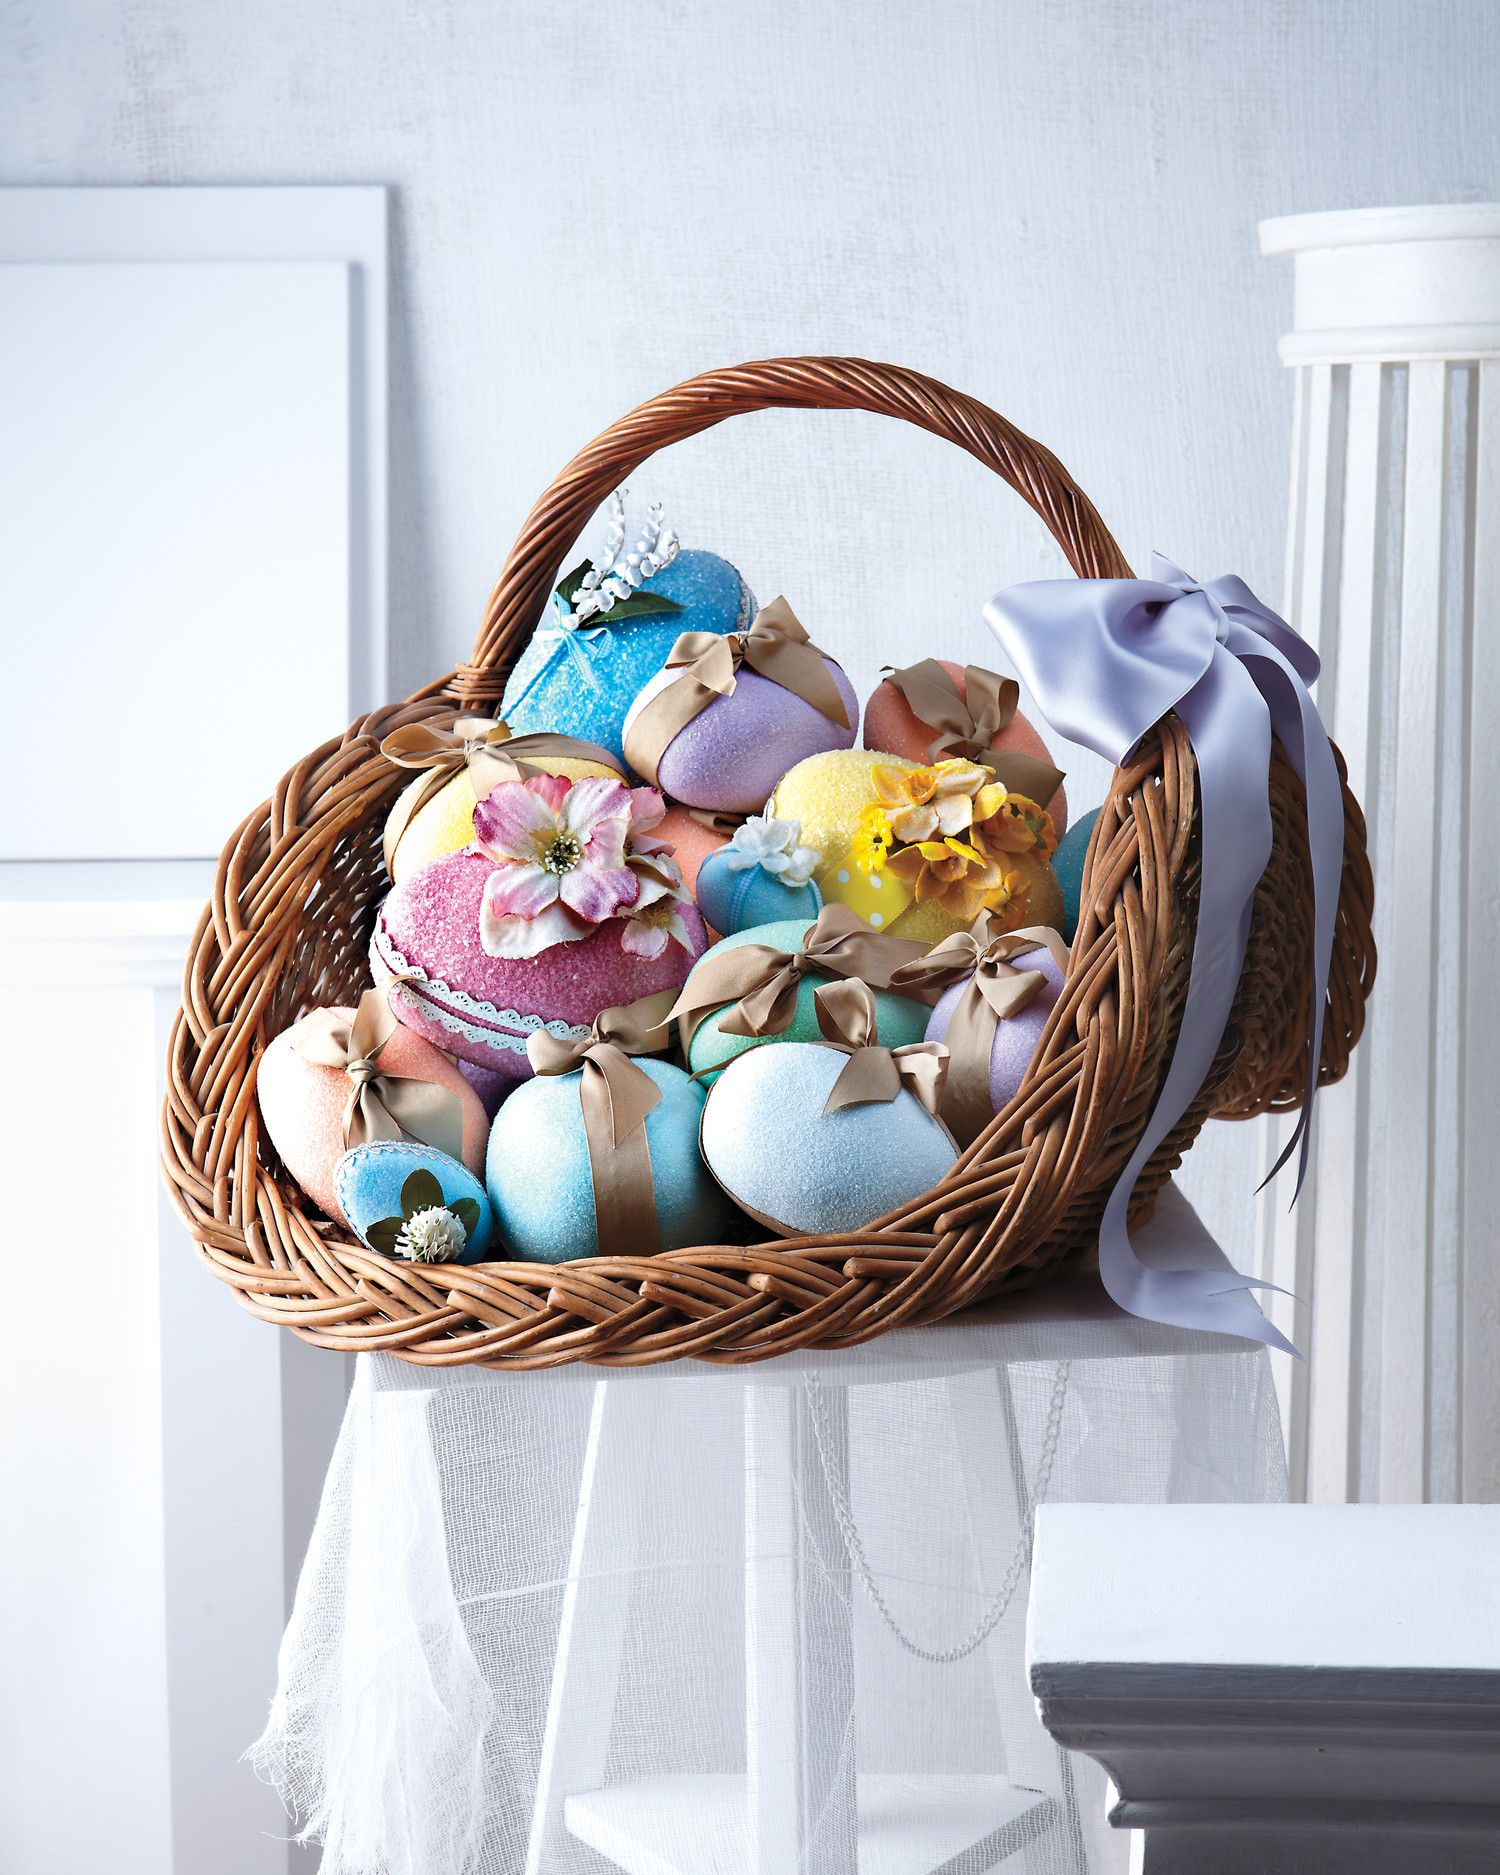 Being blue has never felt so good. Especially since little presents, such as a vintage bluebird, are tucked inside these shimmering egg boxes.